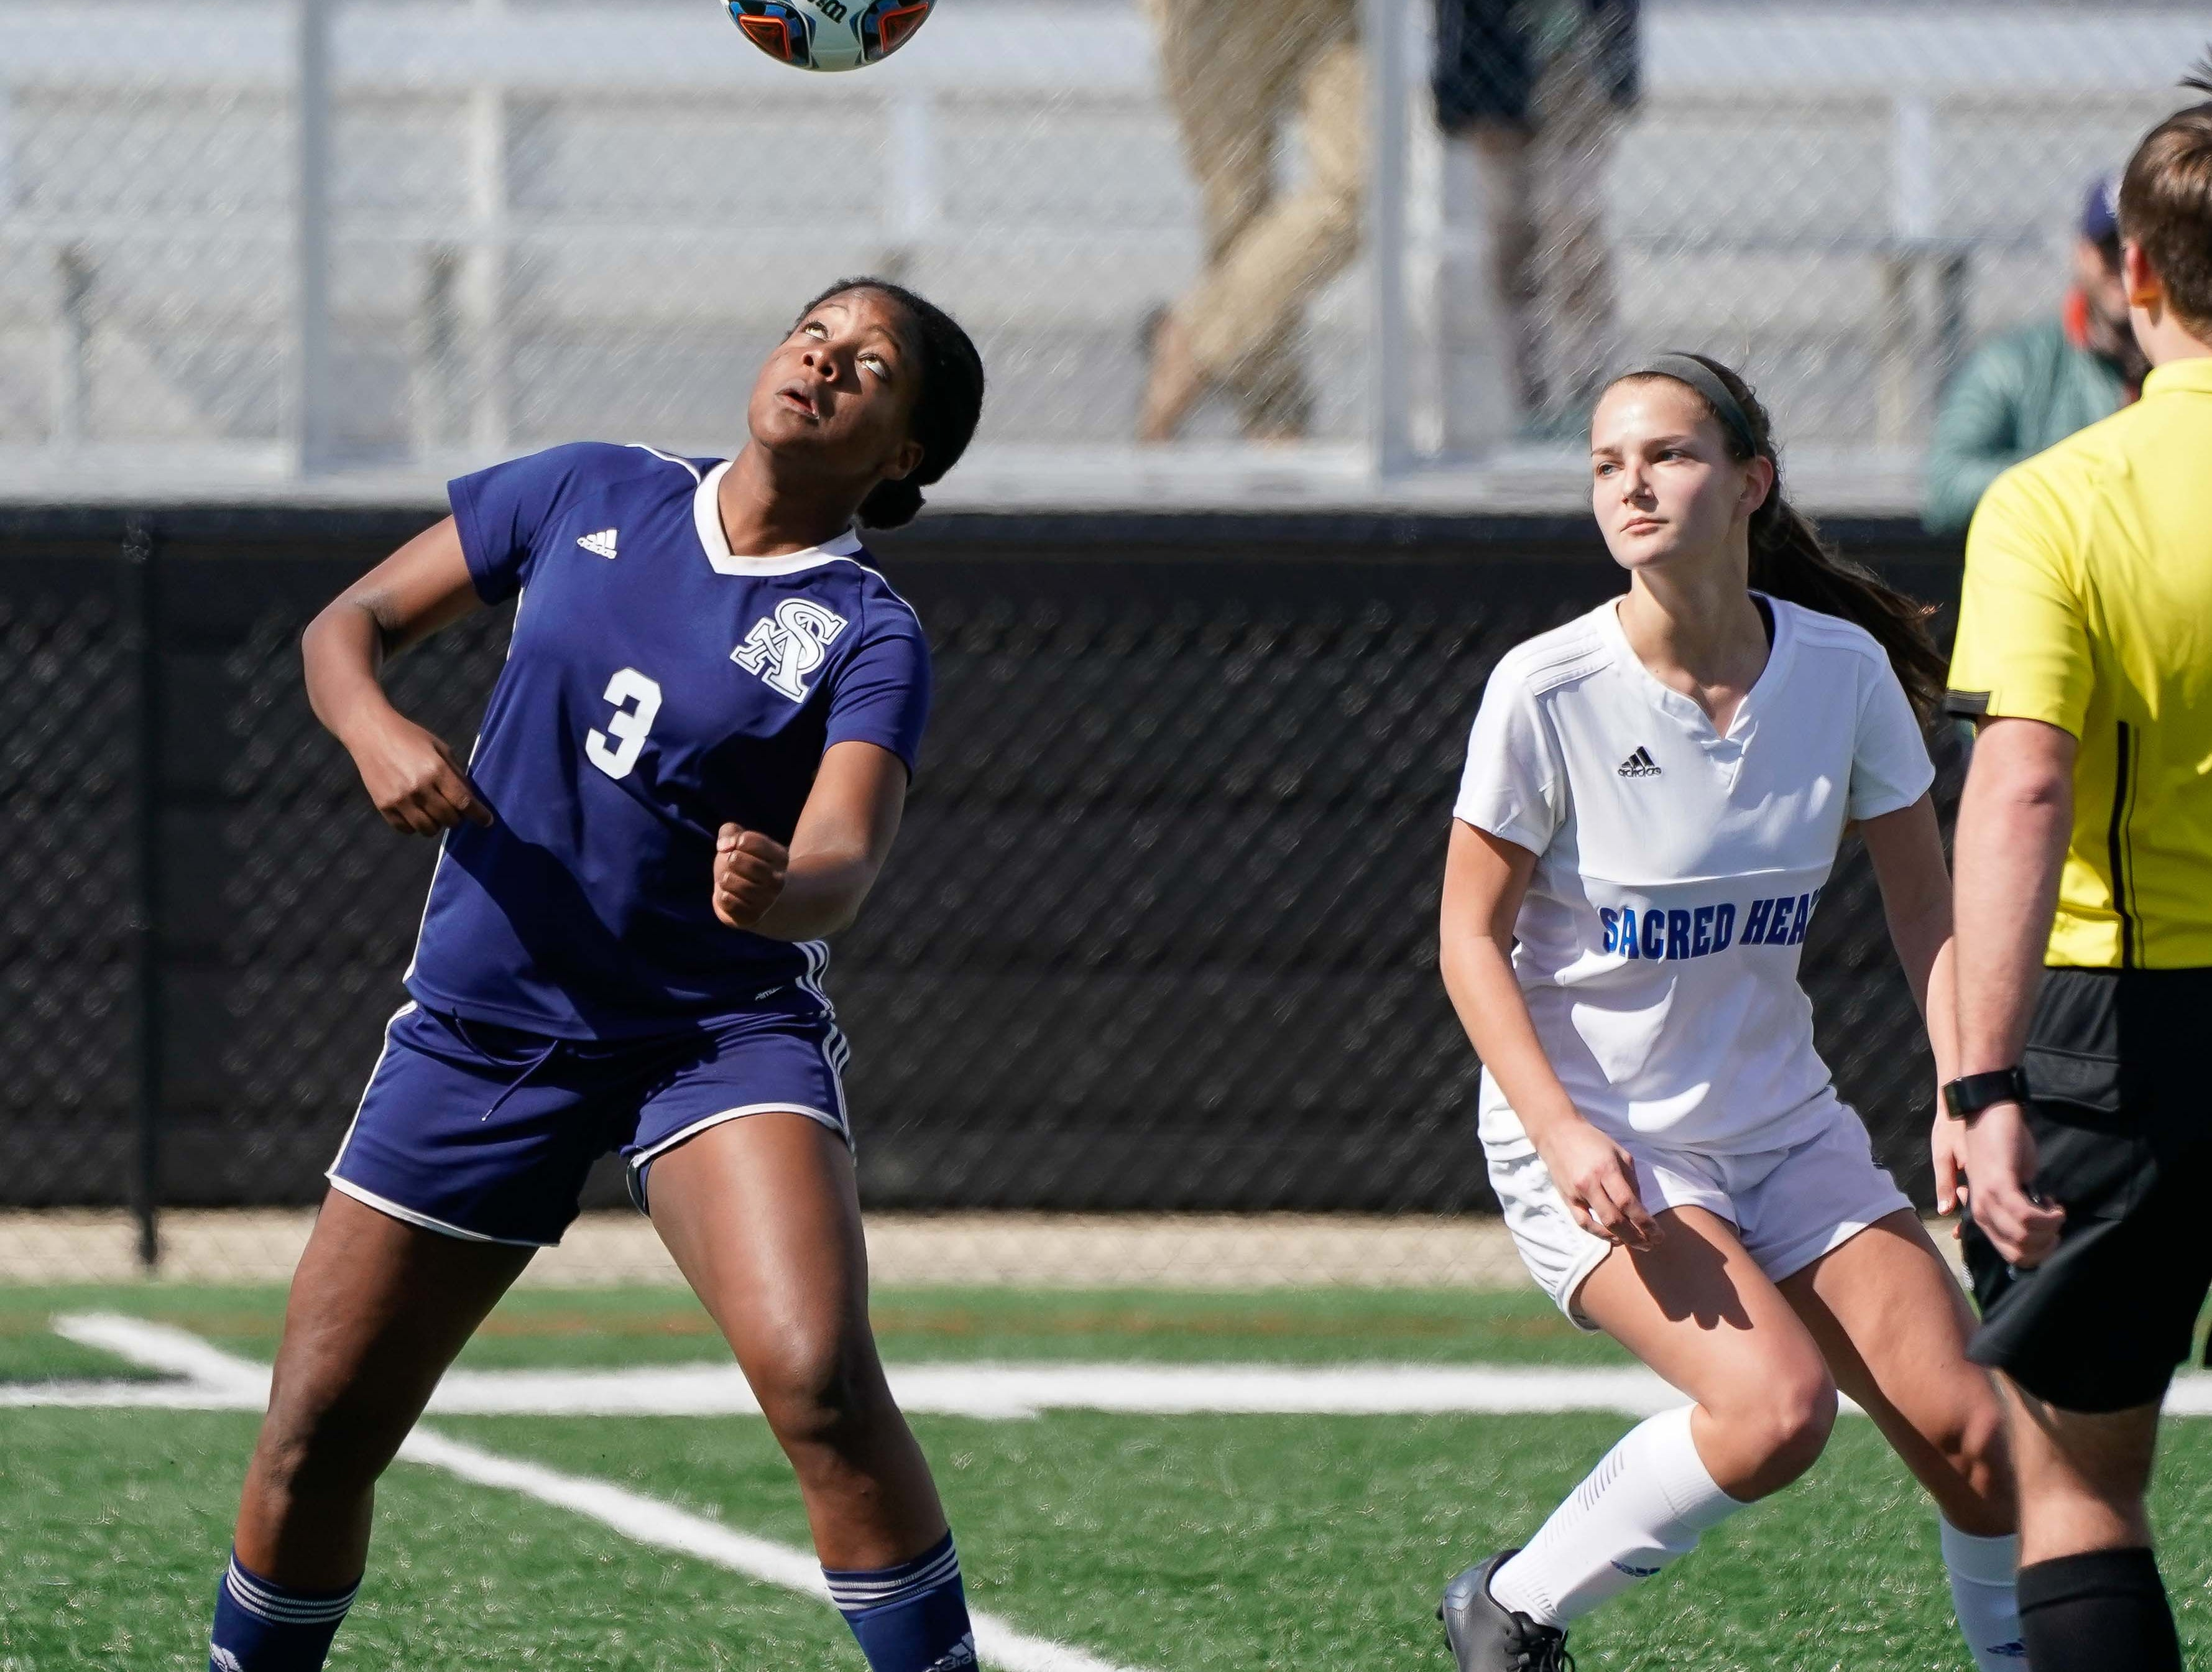 St. Andrew's (3) heads a ball against Sacred Heart during the MHSAA 1A,2A,3A  GIrls Soccer Championships held at Brandon High School in Brandon, MS, Saturday February 9, 2019.(Bob Smith-For The Clarion Ledger)